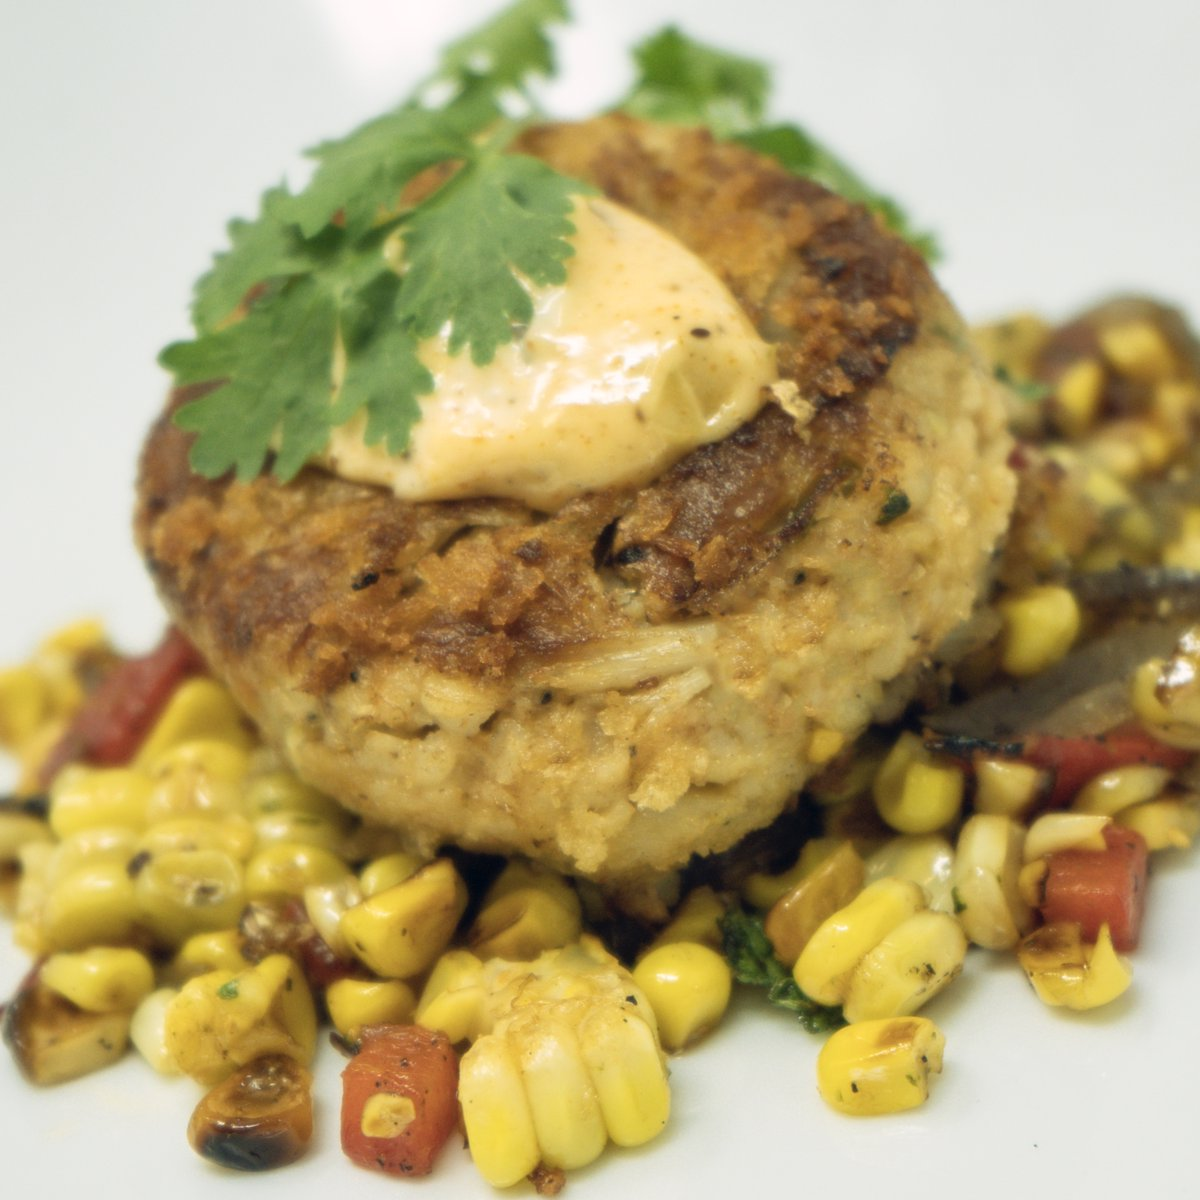 Keep Calm And Crab On  Pan Seared Crab Cake - Maryland Crabcake Seared In Cast Iron Skillet and Served w/ Southwest Roasted Corn Ragu, Fresh Cilantro, & an Old Bar Remoulade : Fahrenheit 760  #flavorism #marylandcrabcakes #maryland #crabcakes #crab #stamfordct #greenwichctpic.twitter.com/AtsRzVHY12